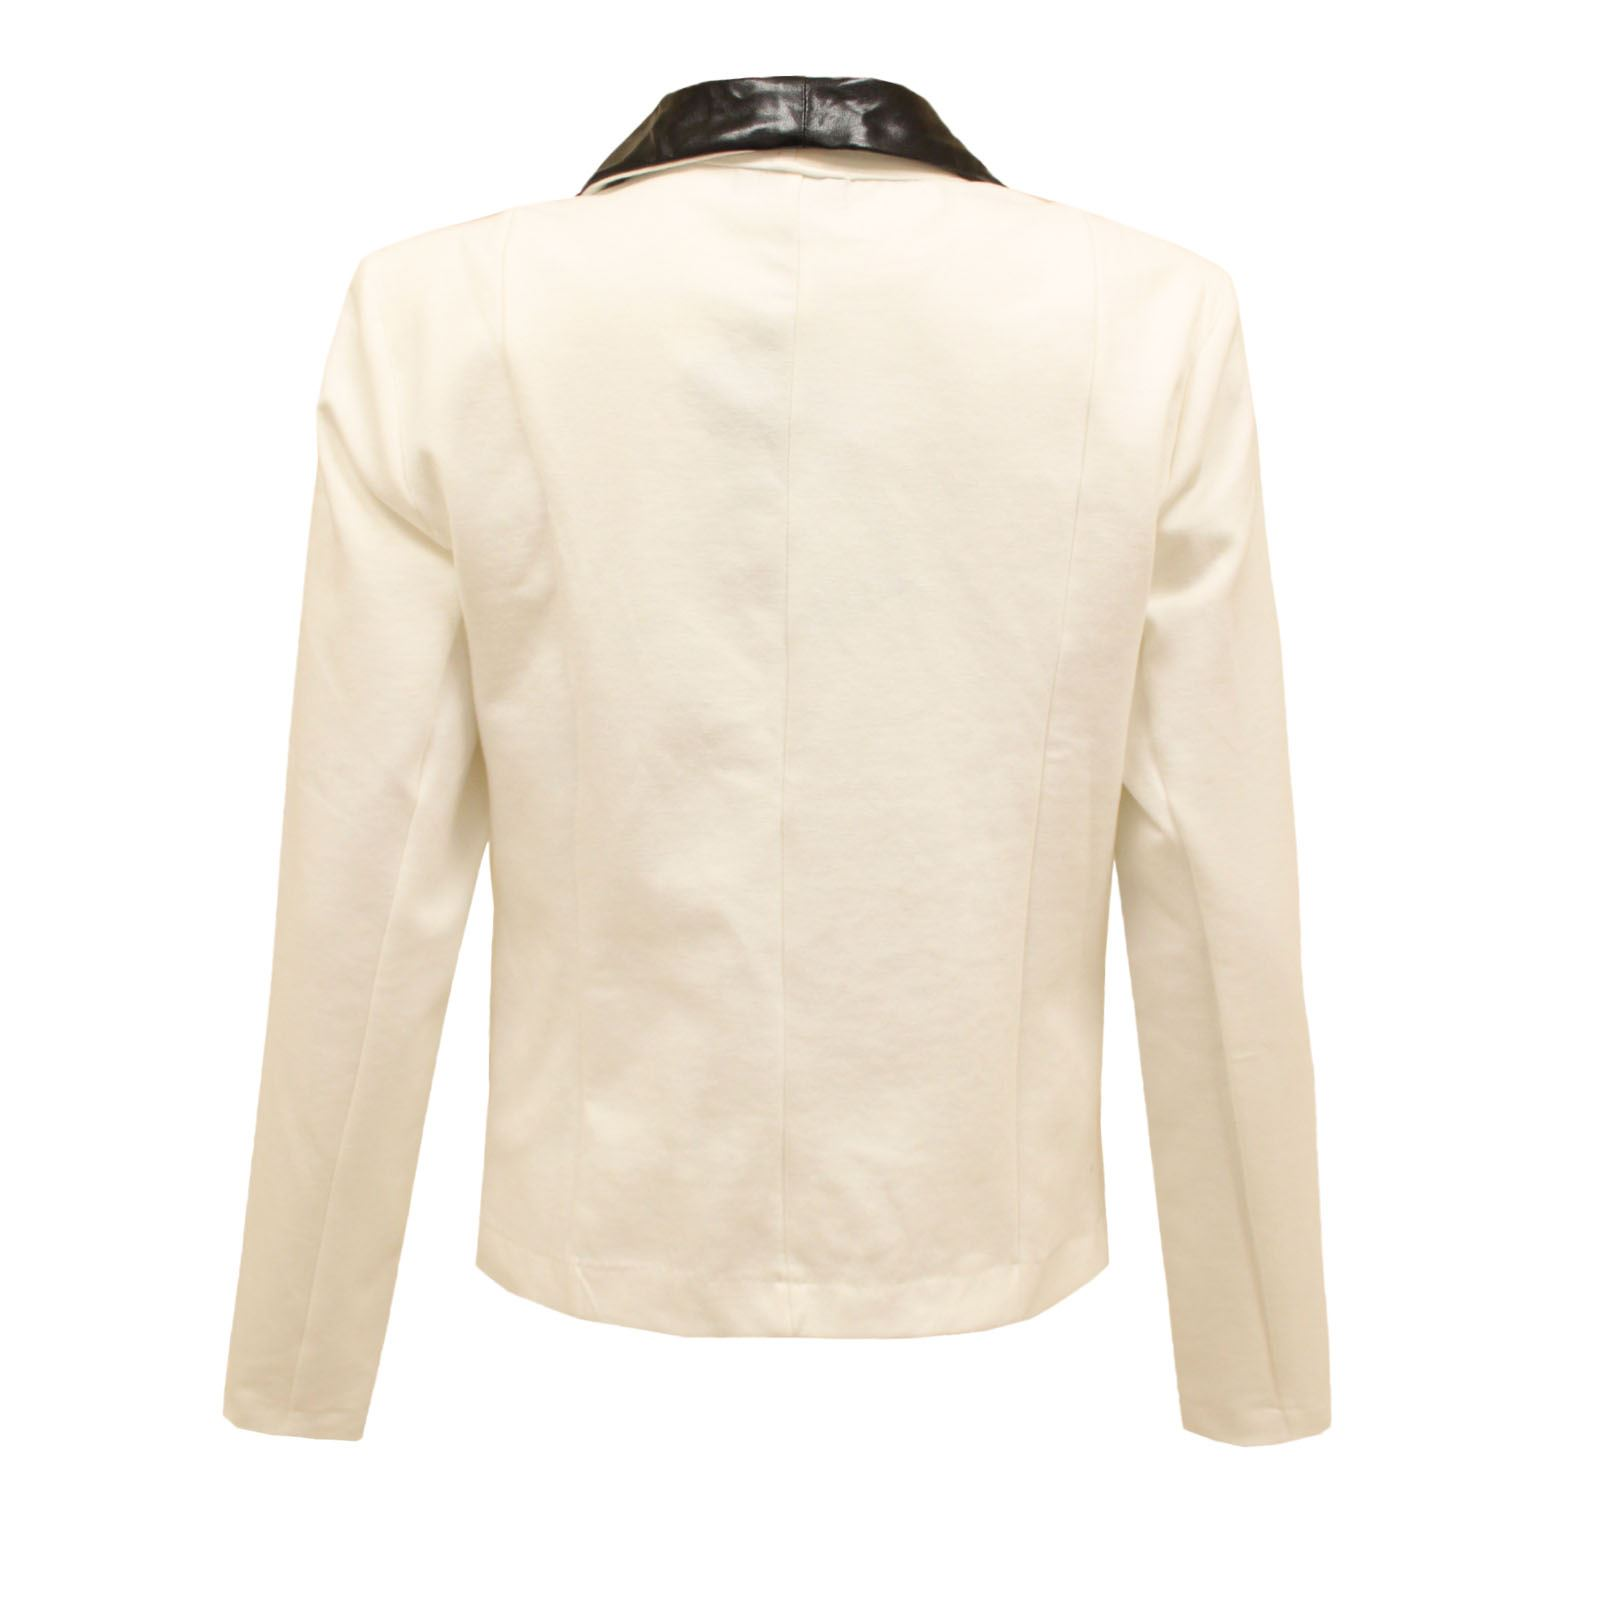 WOMENS LADIES METALLIC SHINY JACKET WET LOOK PVC COLLAR GOLD BUTTONS BLAZER TOP